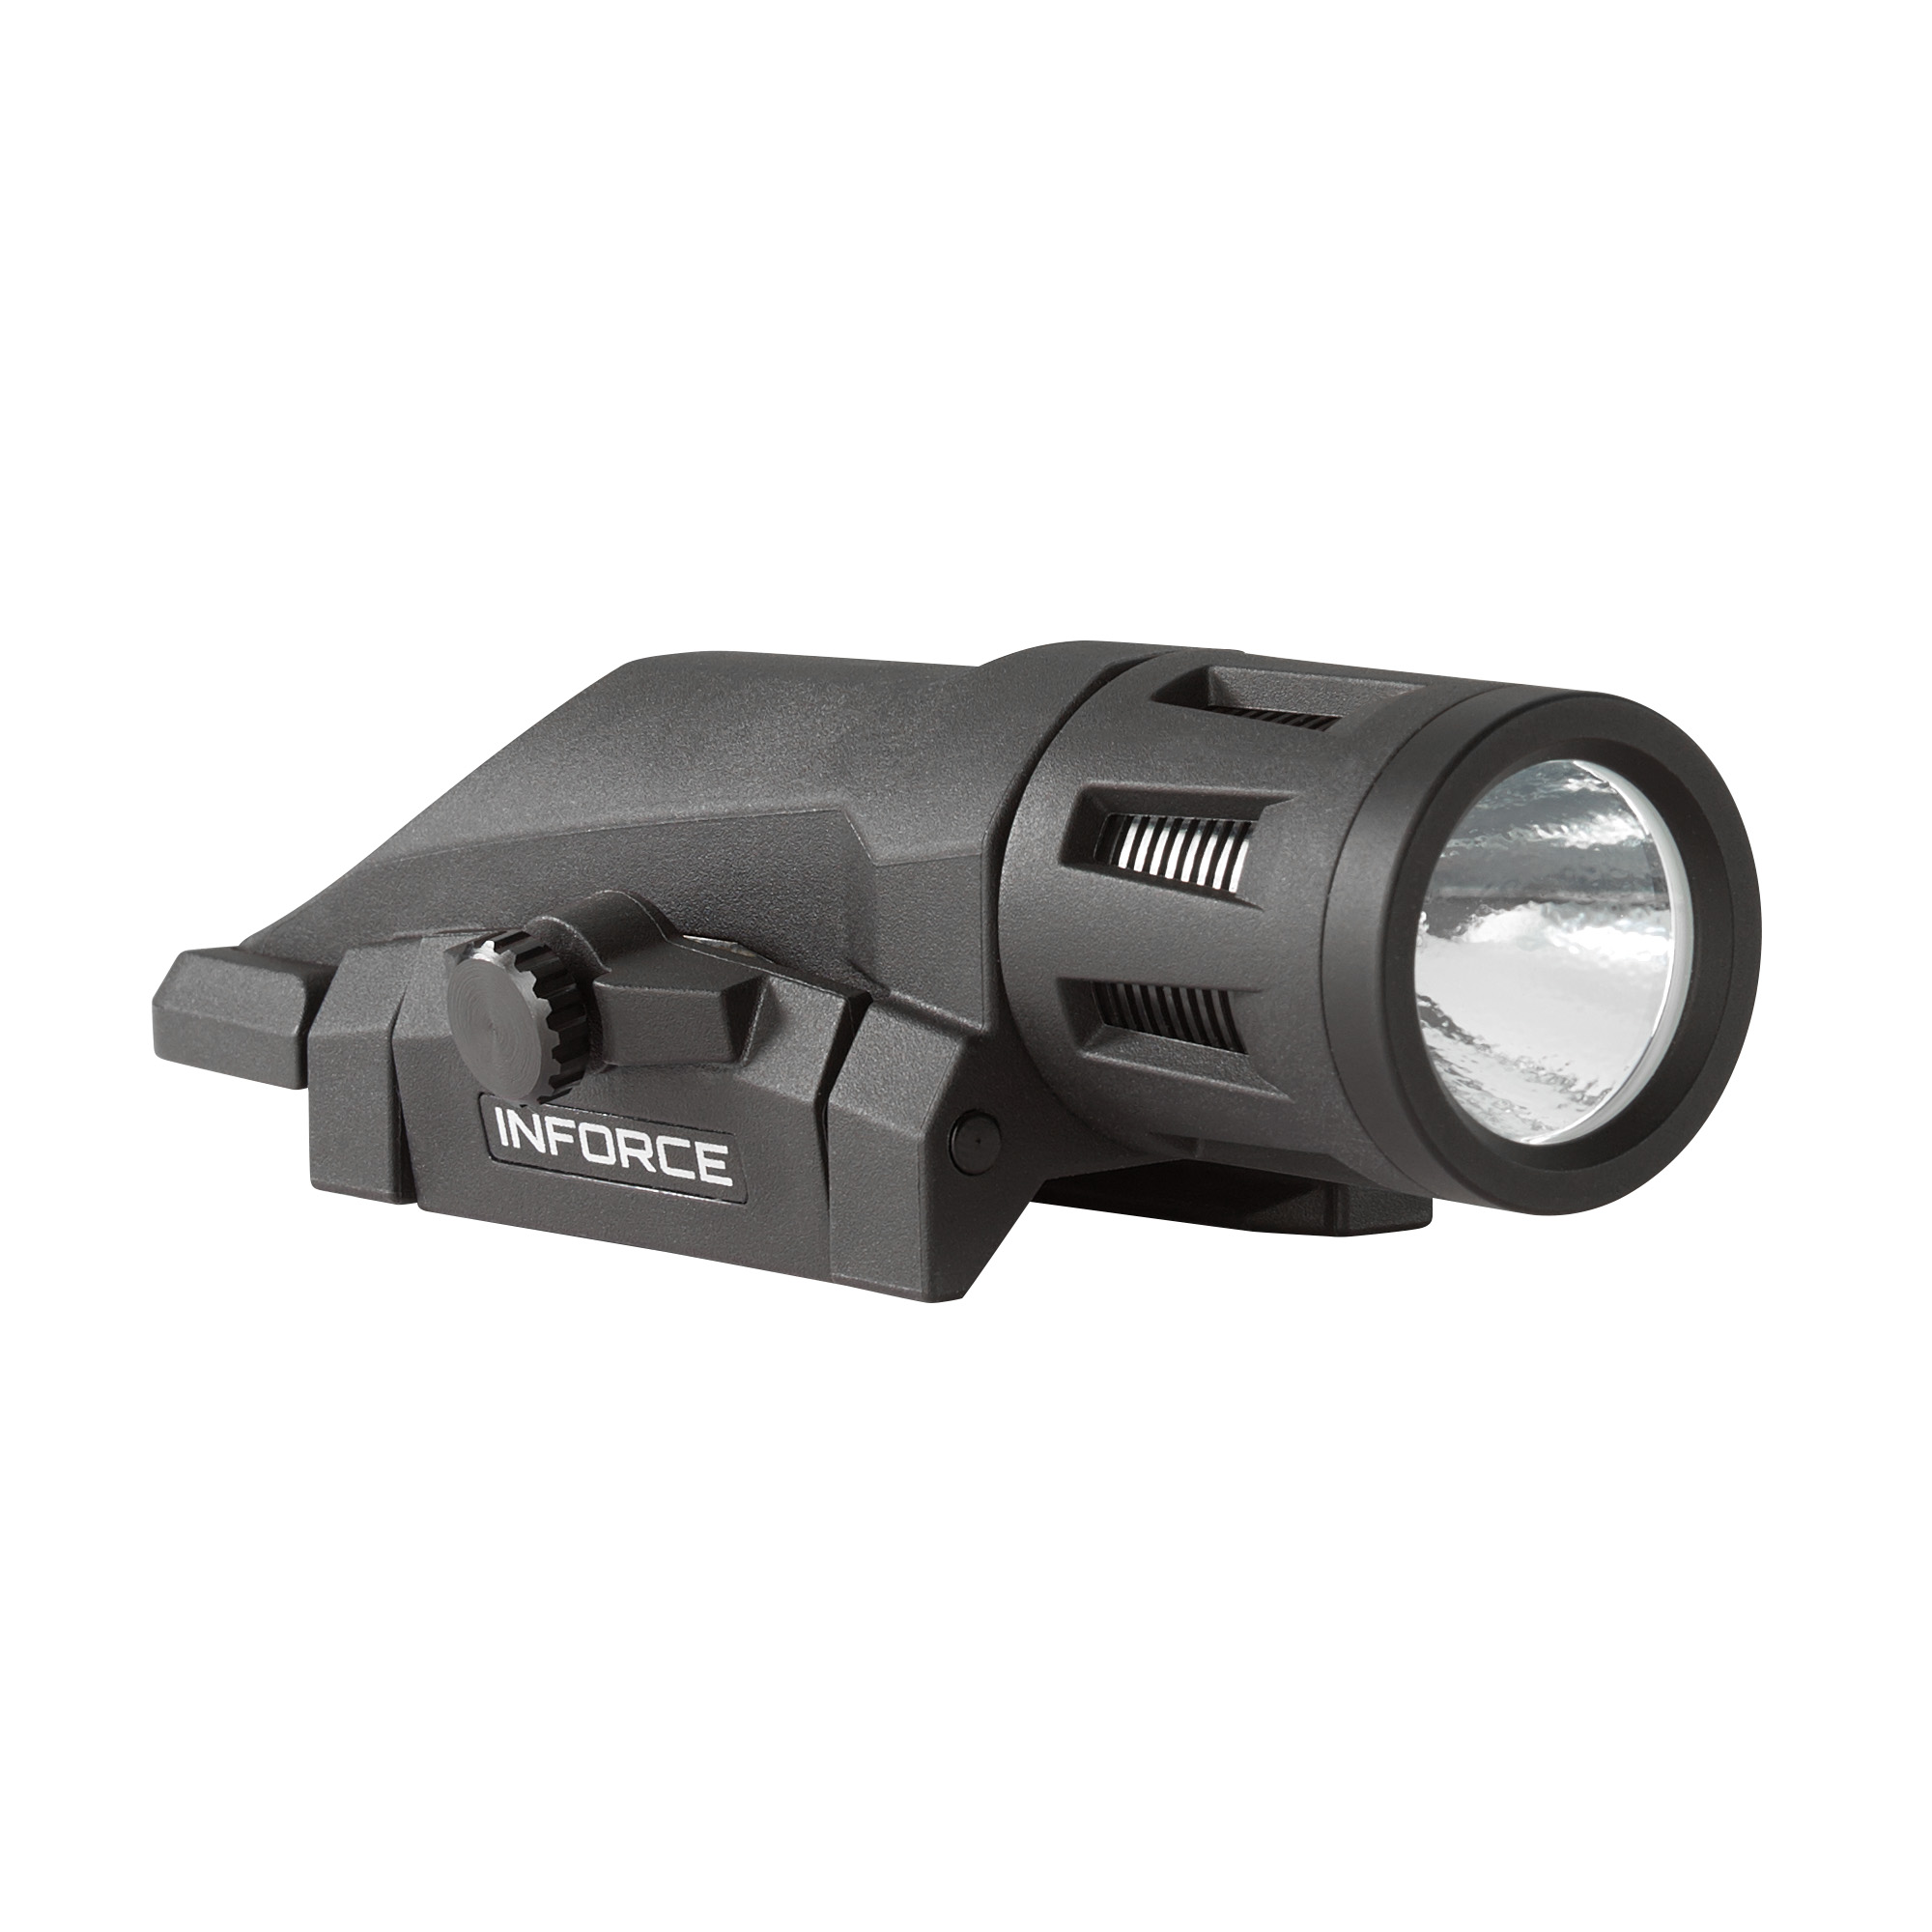 """With 400 lumens of vibrant white light"""" Inforce's WML Series is ultra-compact"""" durable"""" and offers three operating modes: constant"""" momentary and strobe. Extensively tested for performance"""" durability and reliability"""" its high efficiency emitters provide up to 1.5 hours of runtime in white mode"""" or 4 hours in infrared mode. This 3-ounce weapon light's concentrated"""" high-intensity beam fills your field of view for close to mid-range target identification. With just a flip of the lever"""" instantaneously switch between white or infrared mode. In addition"""" the easy-to-operate lockout system ensures the light isn't activated until you're ready. Our all-inclusive rail clamping design integrates seamlessly with your weapon"""" providing simple"""" fast mounting with no need for additional tools."""